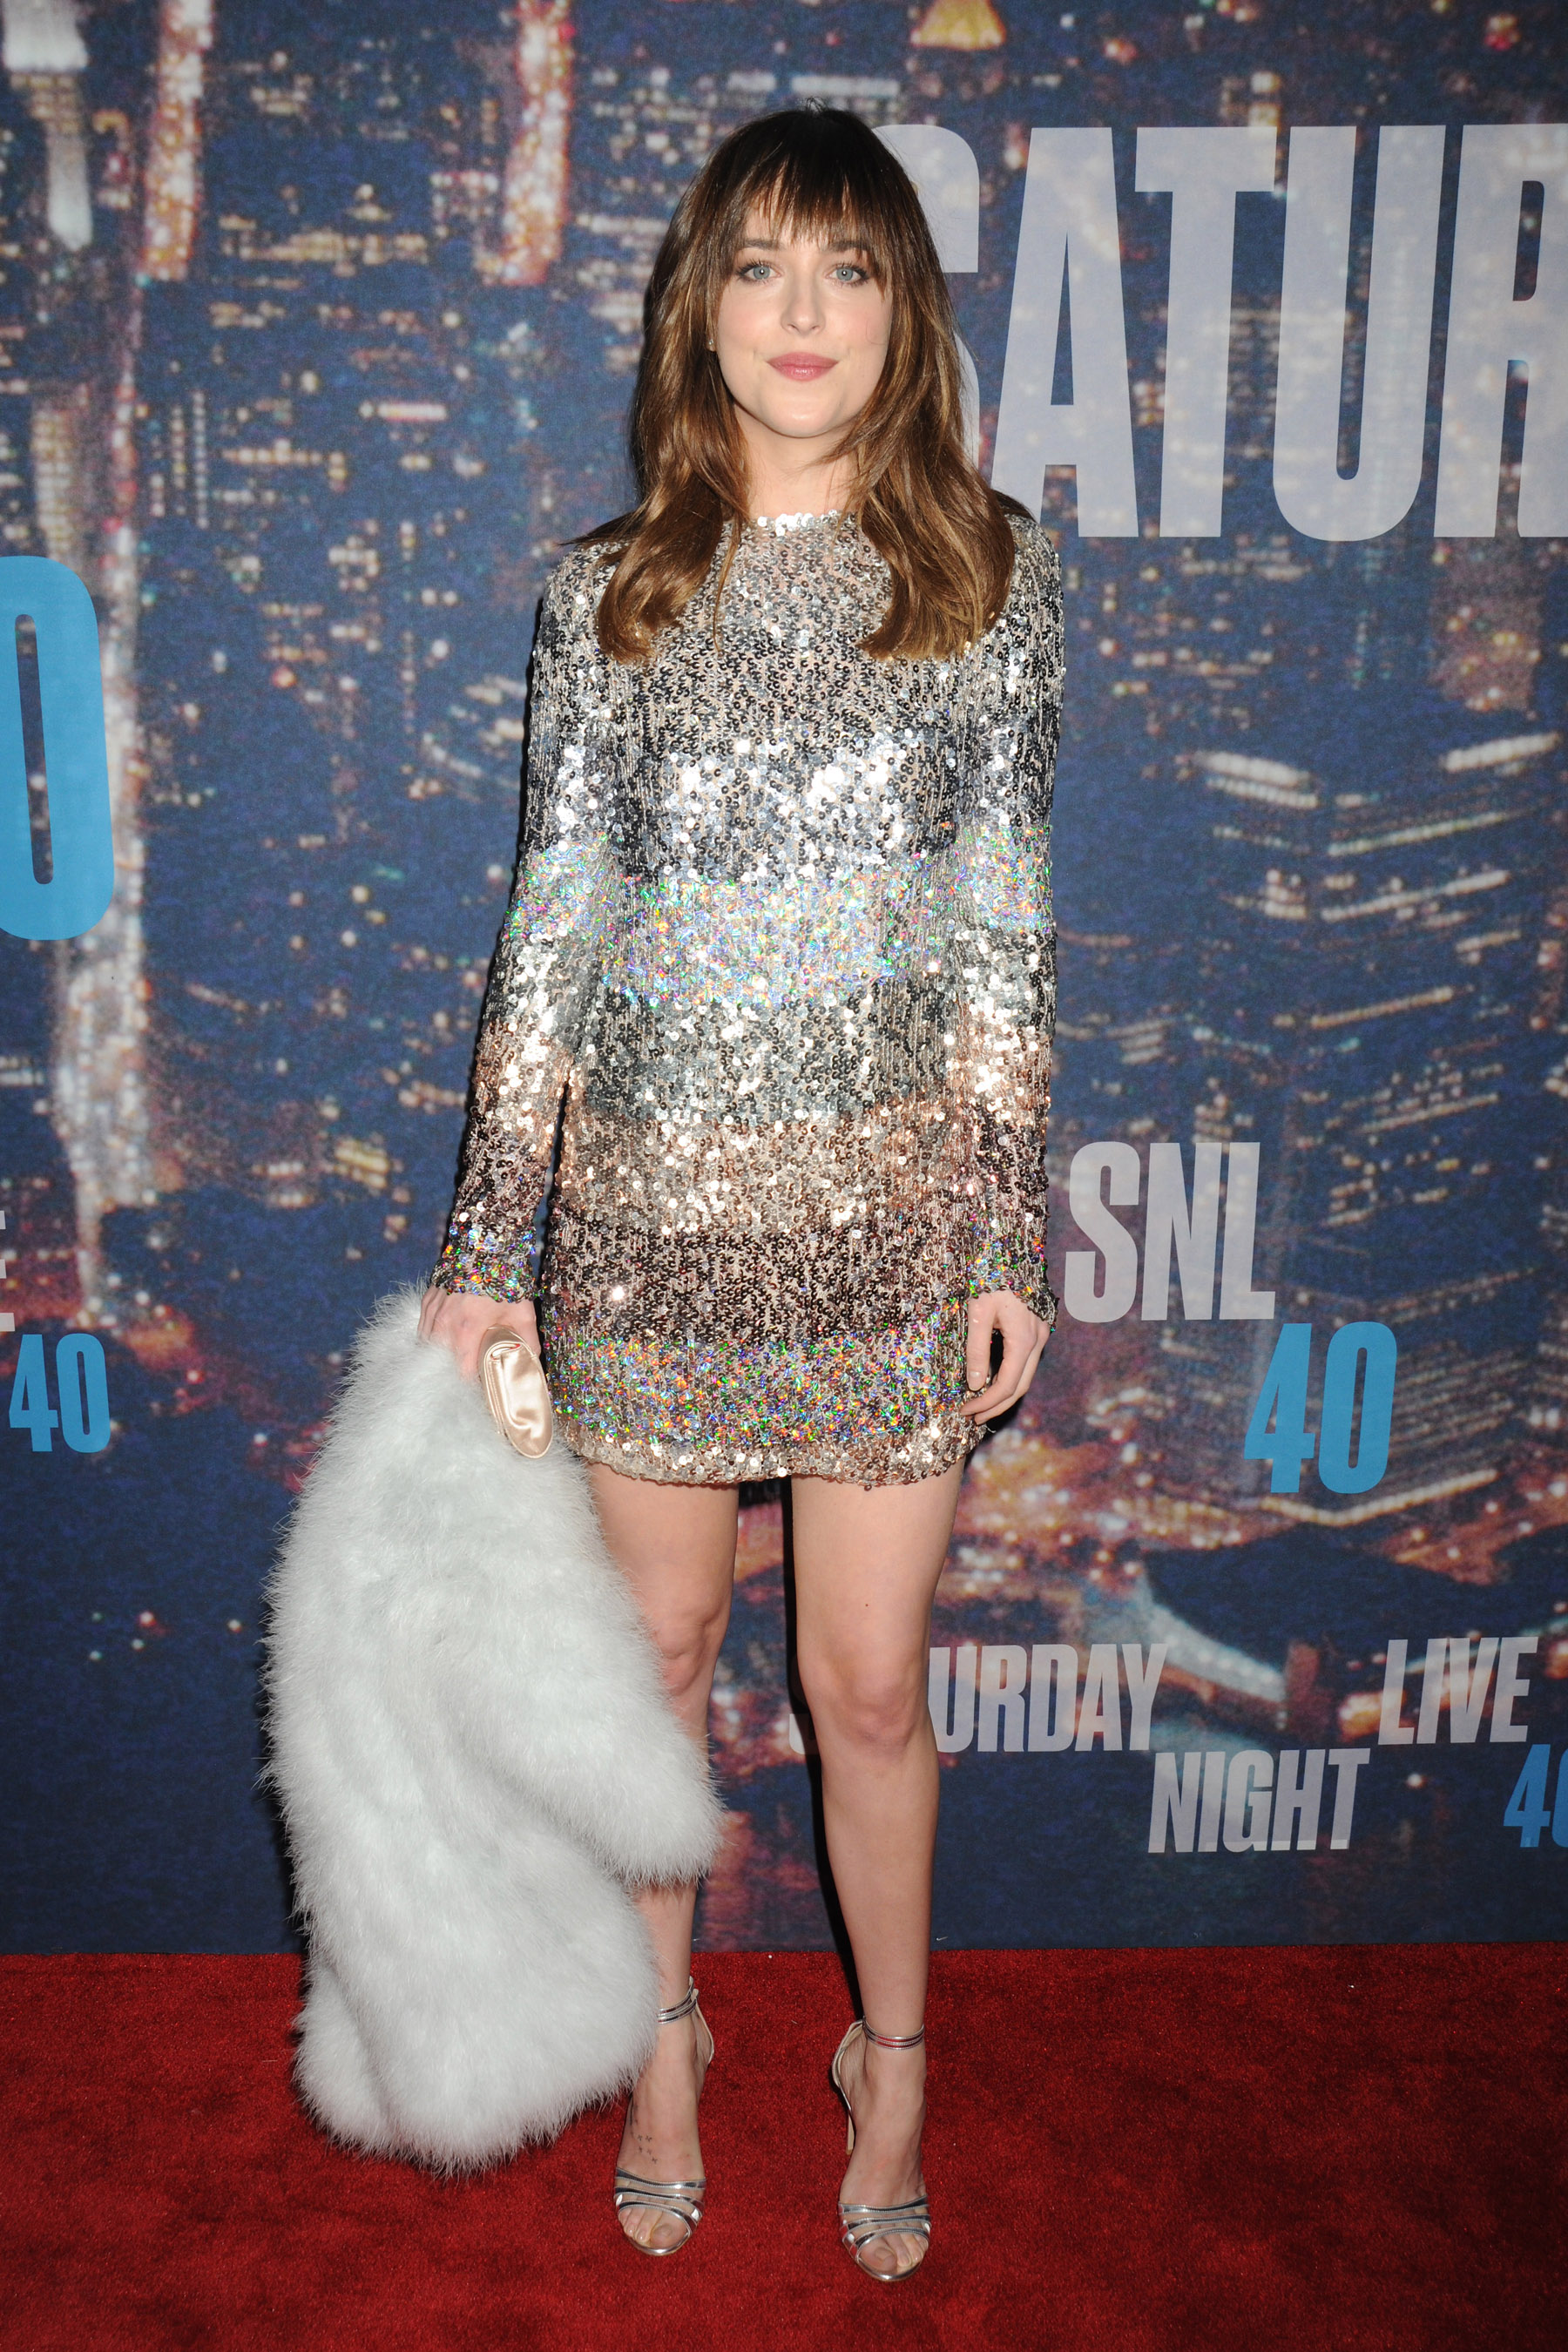 """Dakota Johnson arrives and joins comedy's biggest stars return toStudio 8H for one night only topay tribute to the series' incredible 40 year history for the """"SNL 40th Anniversary Special"""". The show airs live on Sunday, February 15, 2015, held in Rockefeller Plaza at Rockefeller Center in NYC. Pictured: Dakota Johnson Ref: SPL952832 150215 Picture by: Johns PKI / Splash News Splash News and Pictures Los Angeles:310-821-2666 New York: 212-619-2666 London: 870-934-2666 photodesk@splashnews.com"""